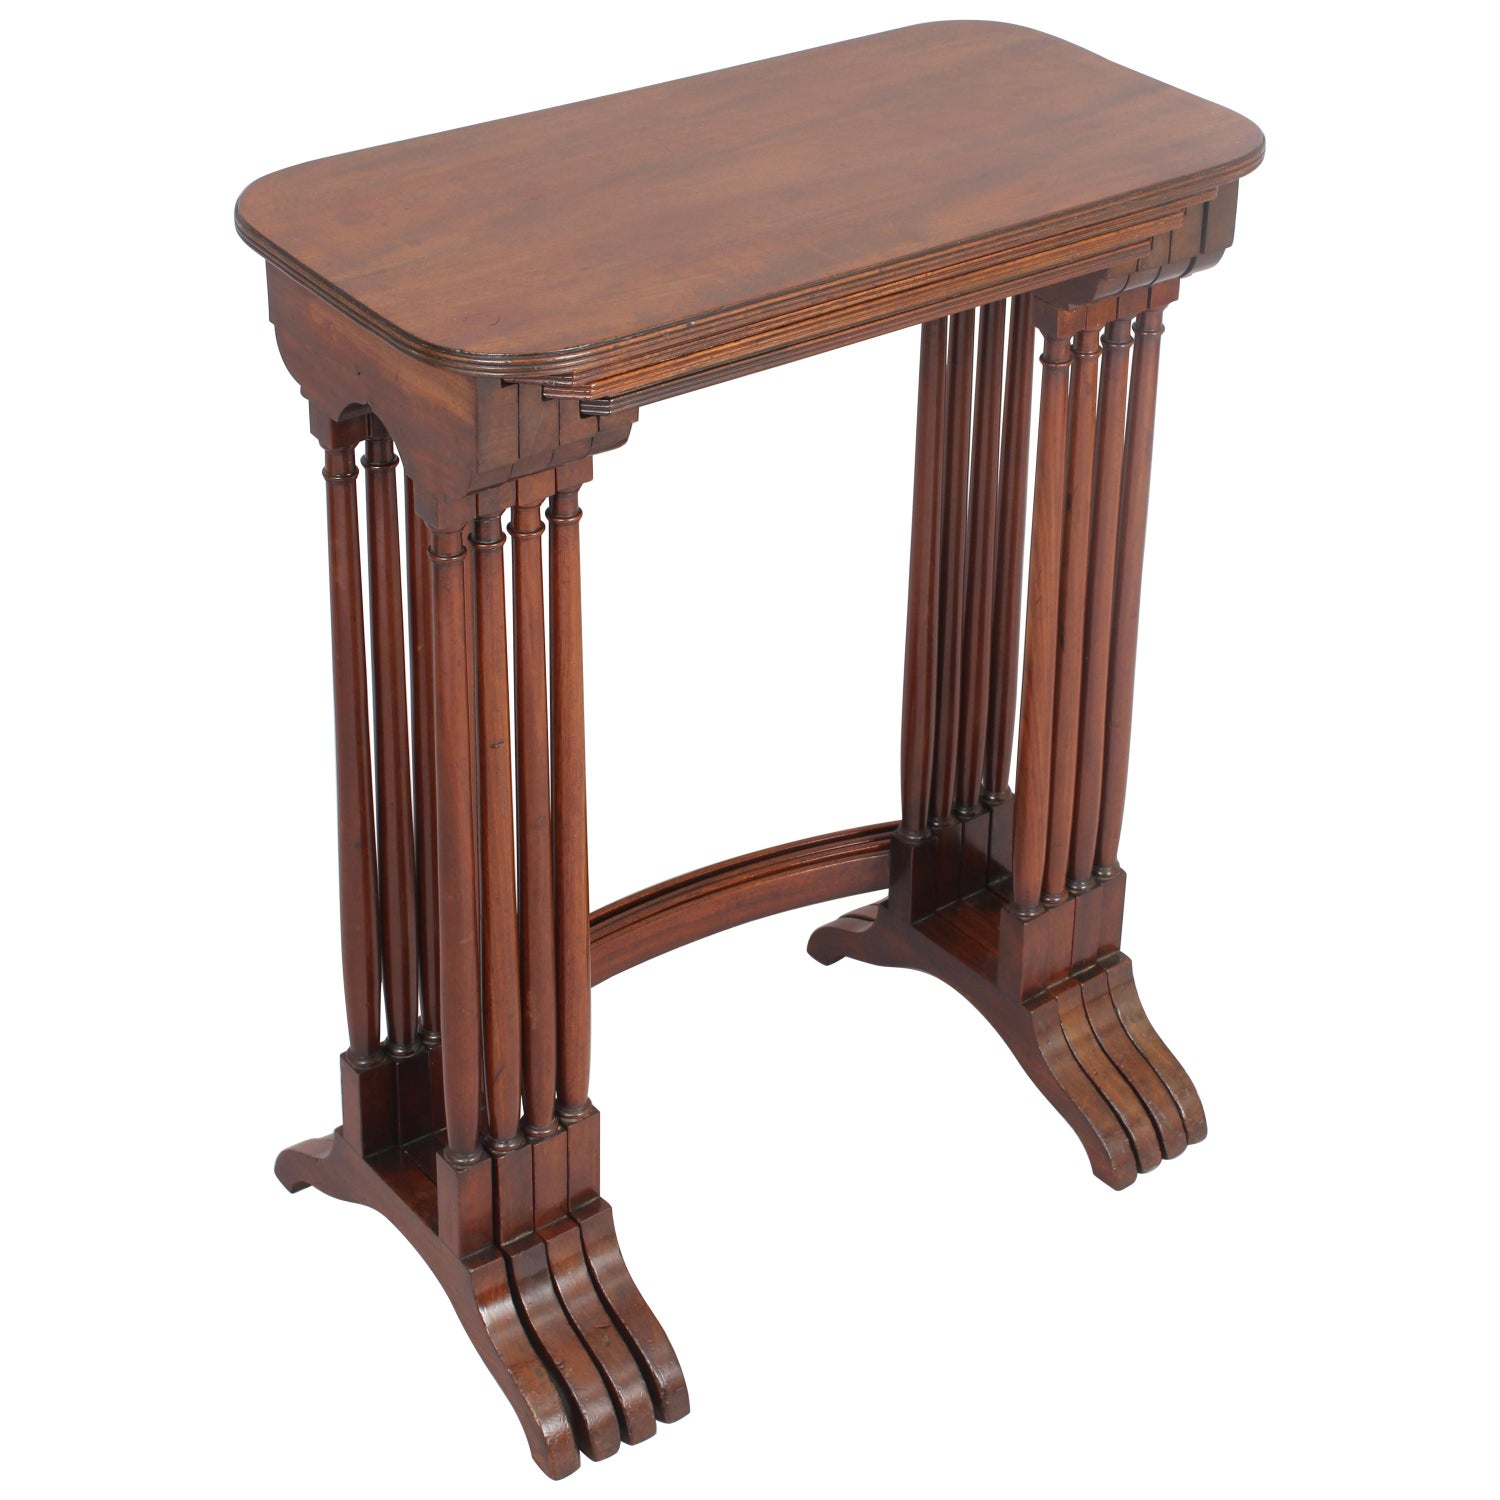 Particularly Fine George III Period Mahogany Set of Quartetto Tables